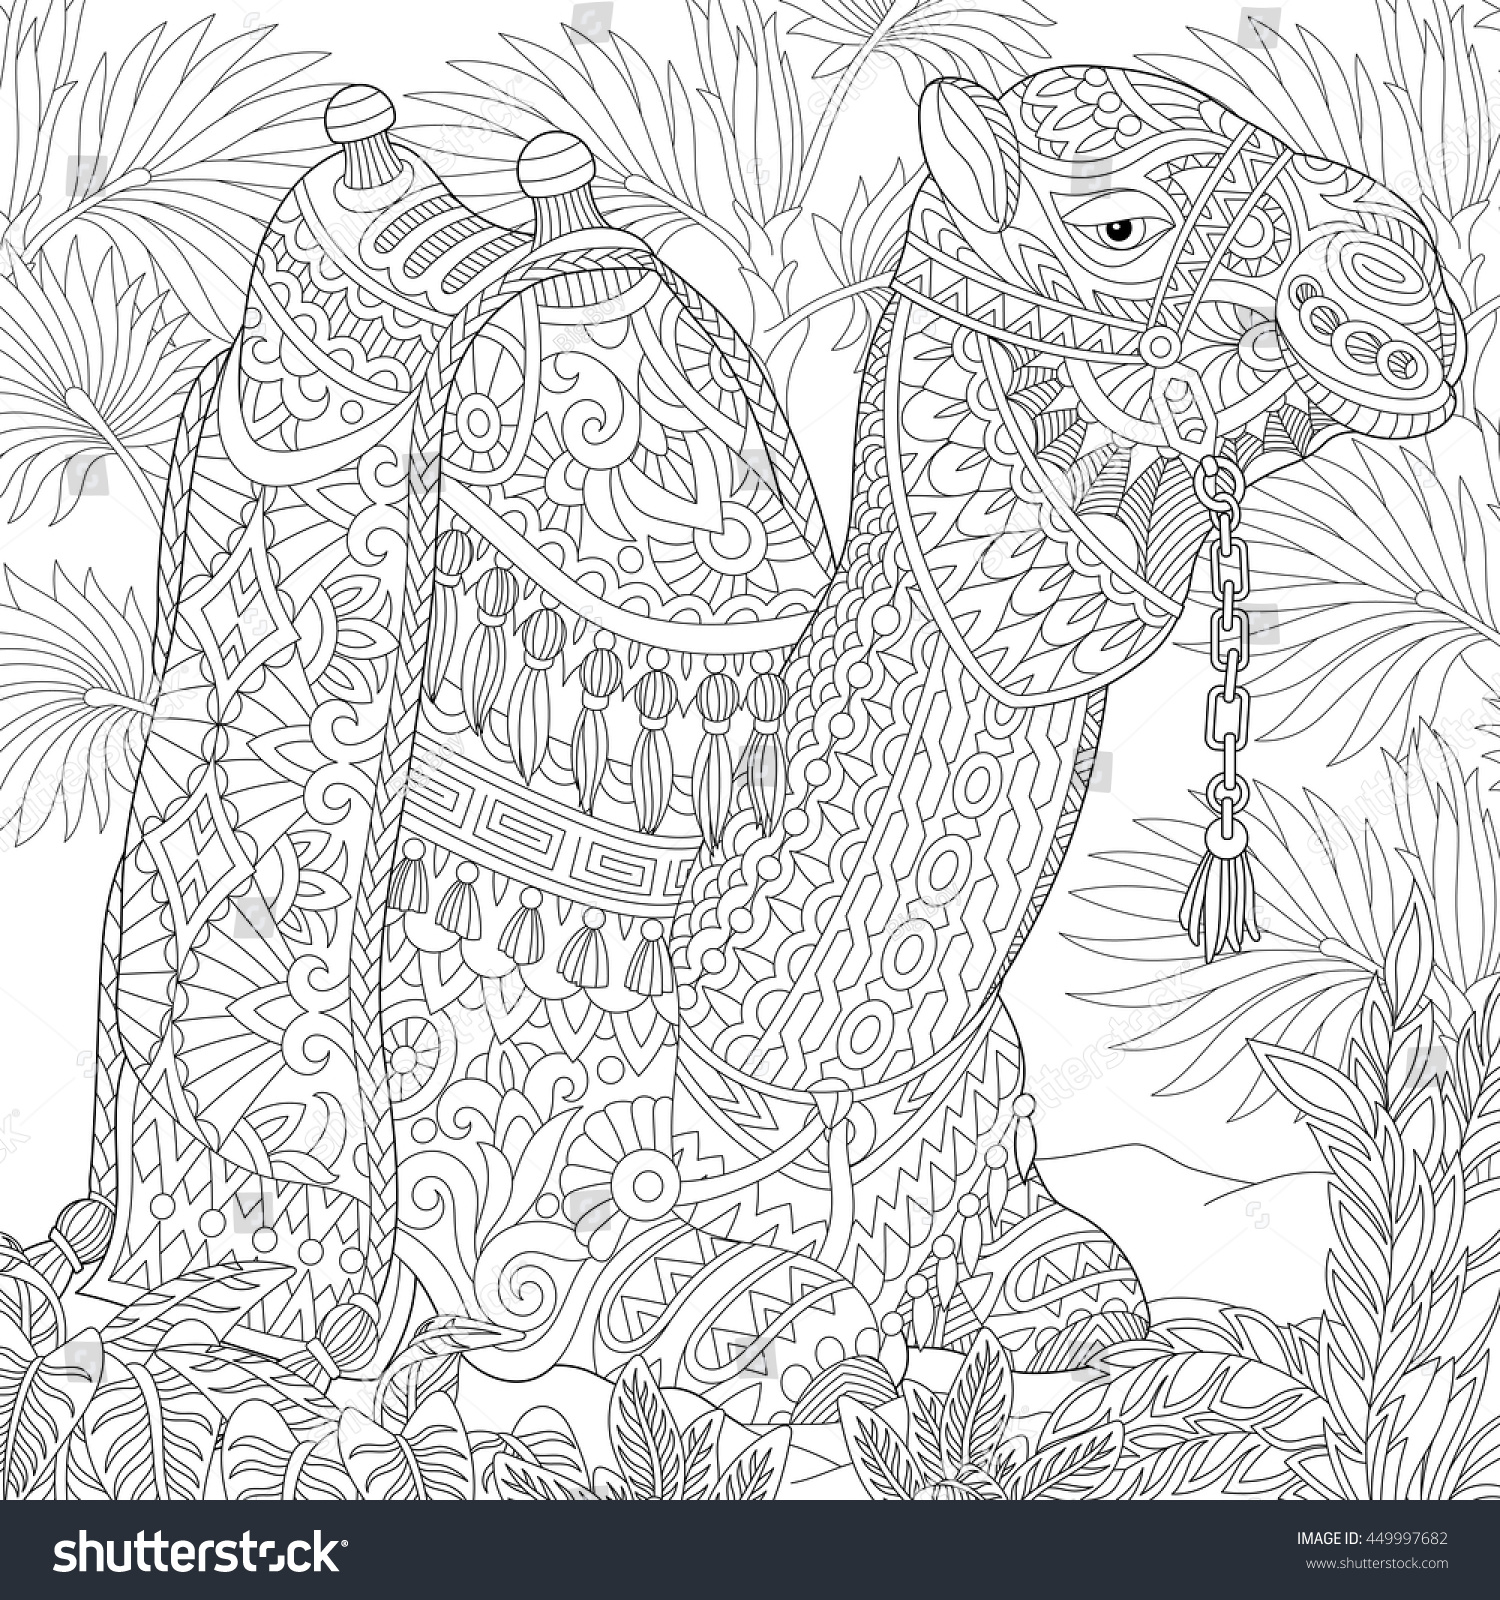 desert oasis coloring pages - photo#18